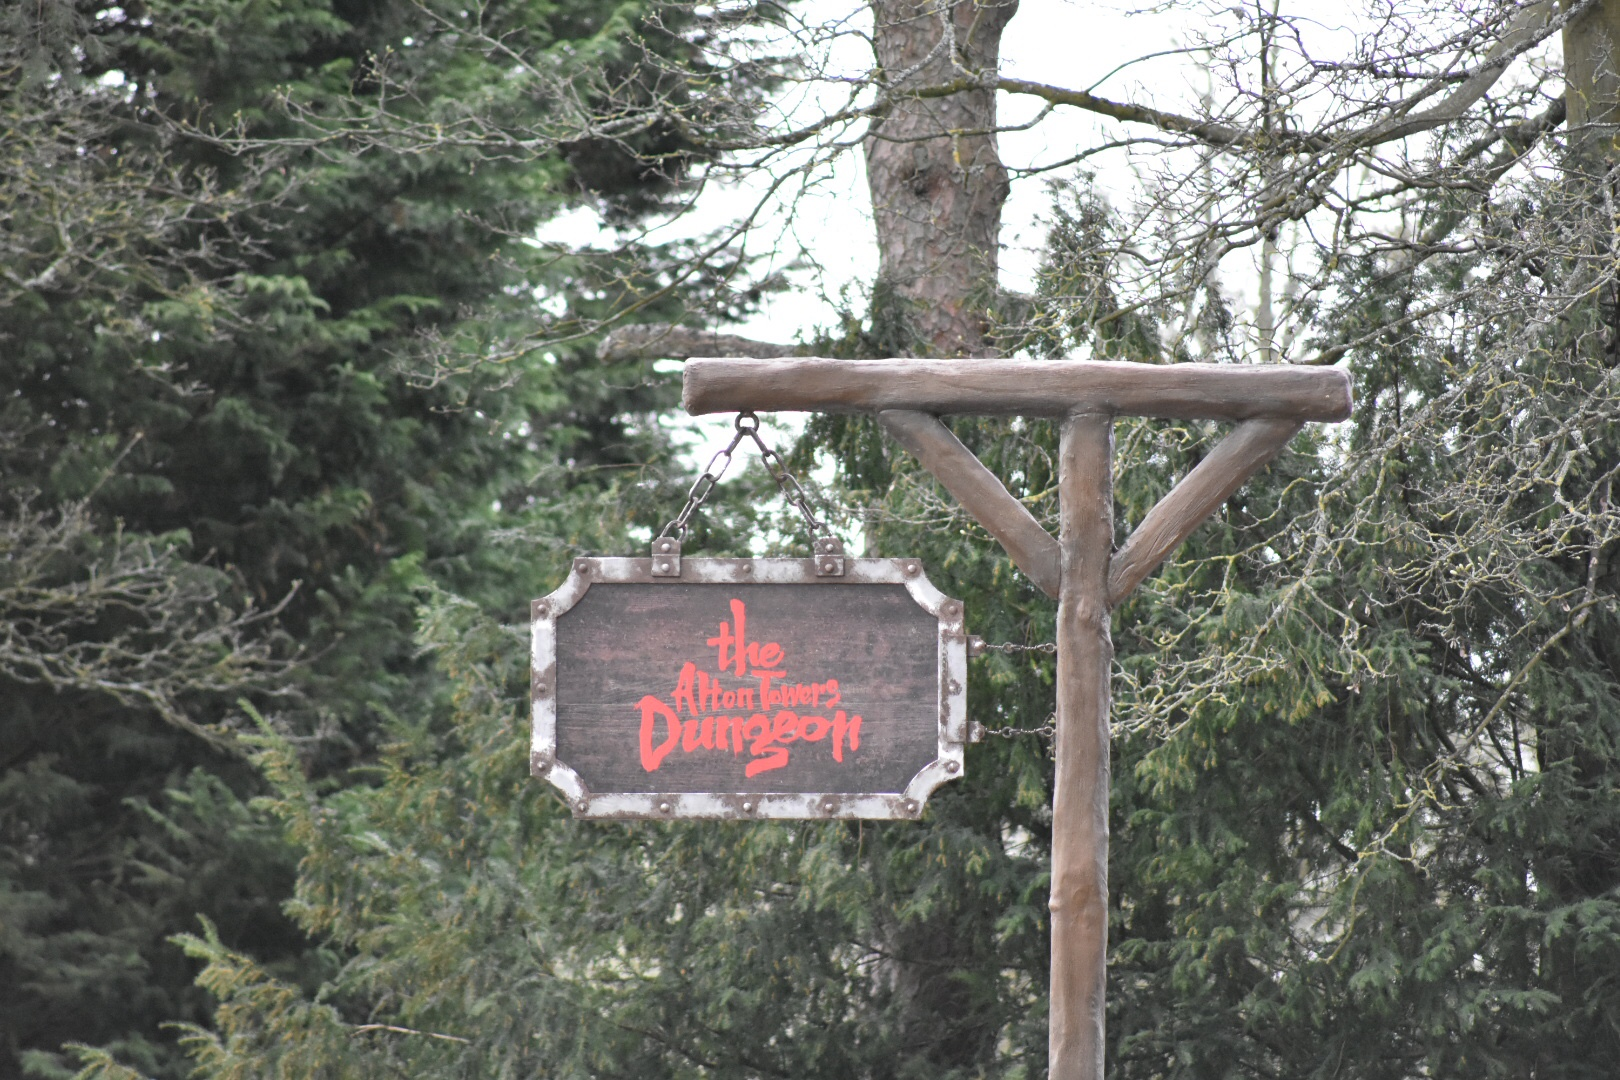 How Long Will The Alton Towers Dungeons Last?